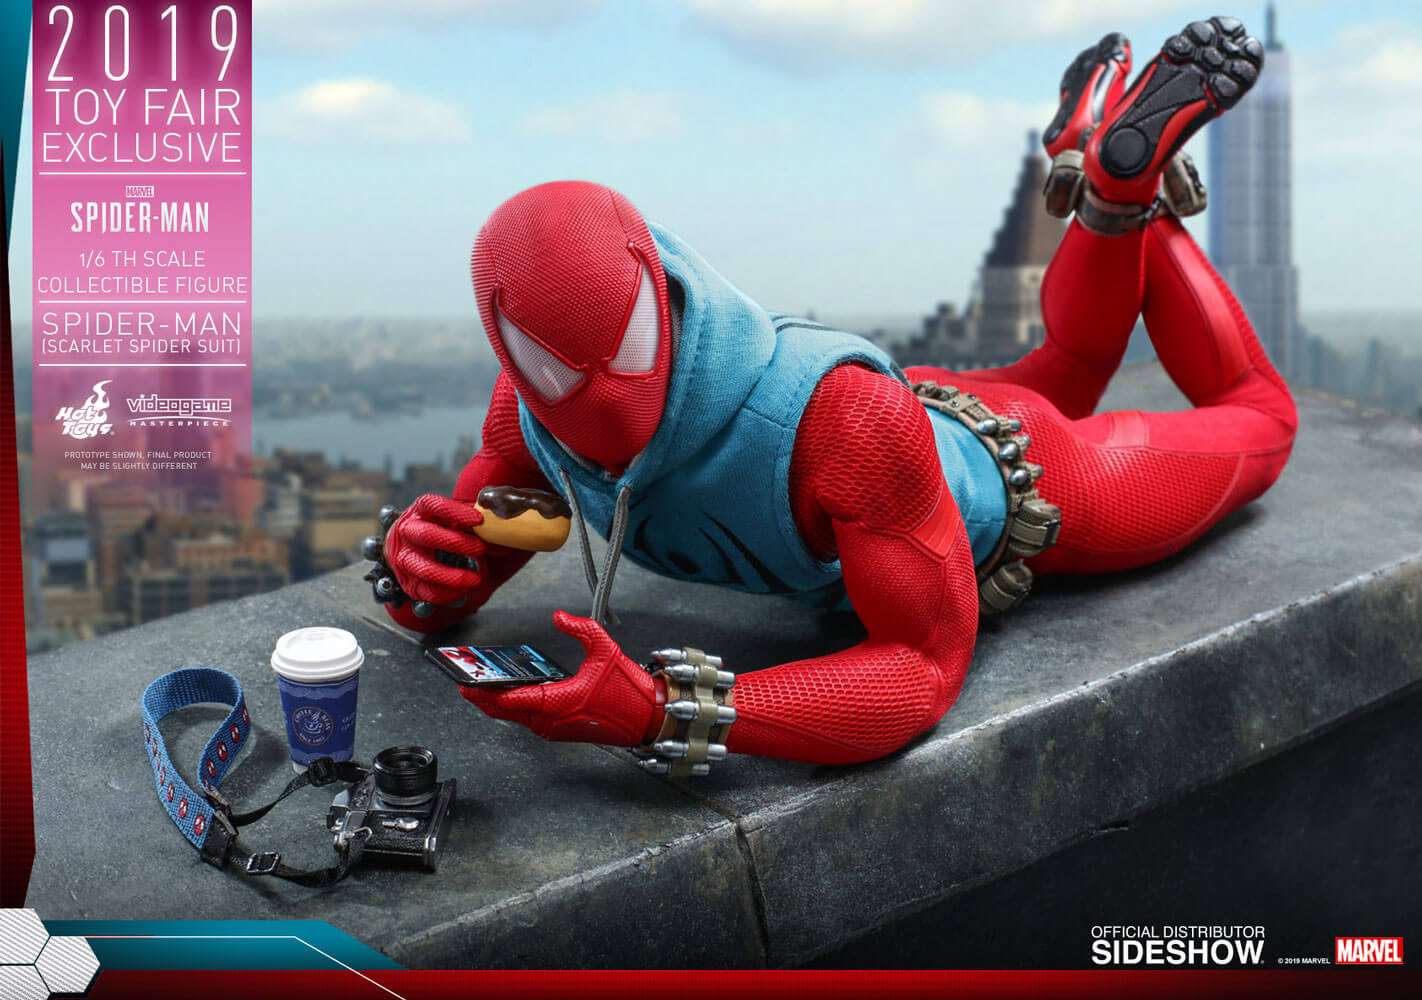 Hot Toys Marvel's Spider-Man VGM34 Spider-Man (Scarlet Spider Suit) 1/6th Scale Collectible Figure